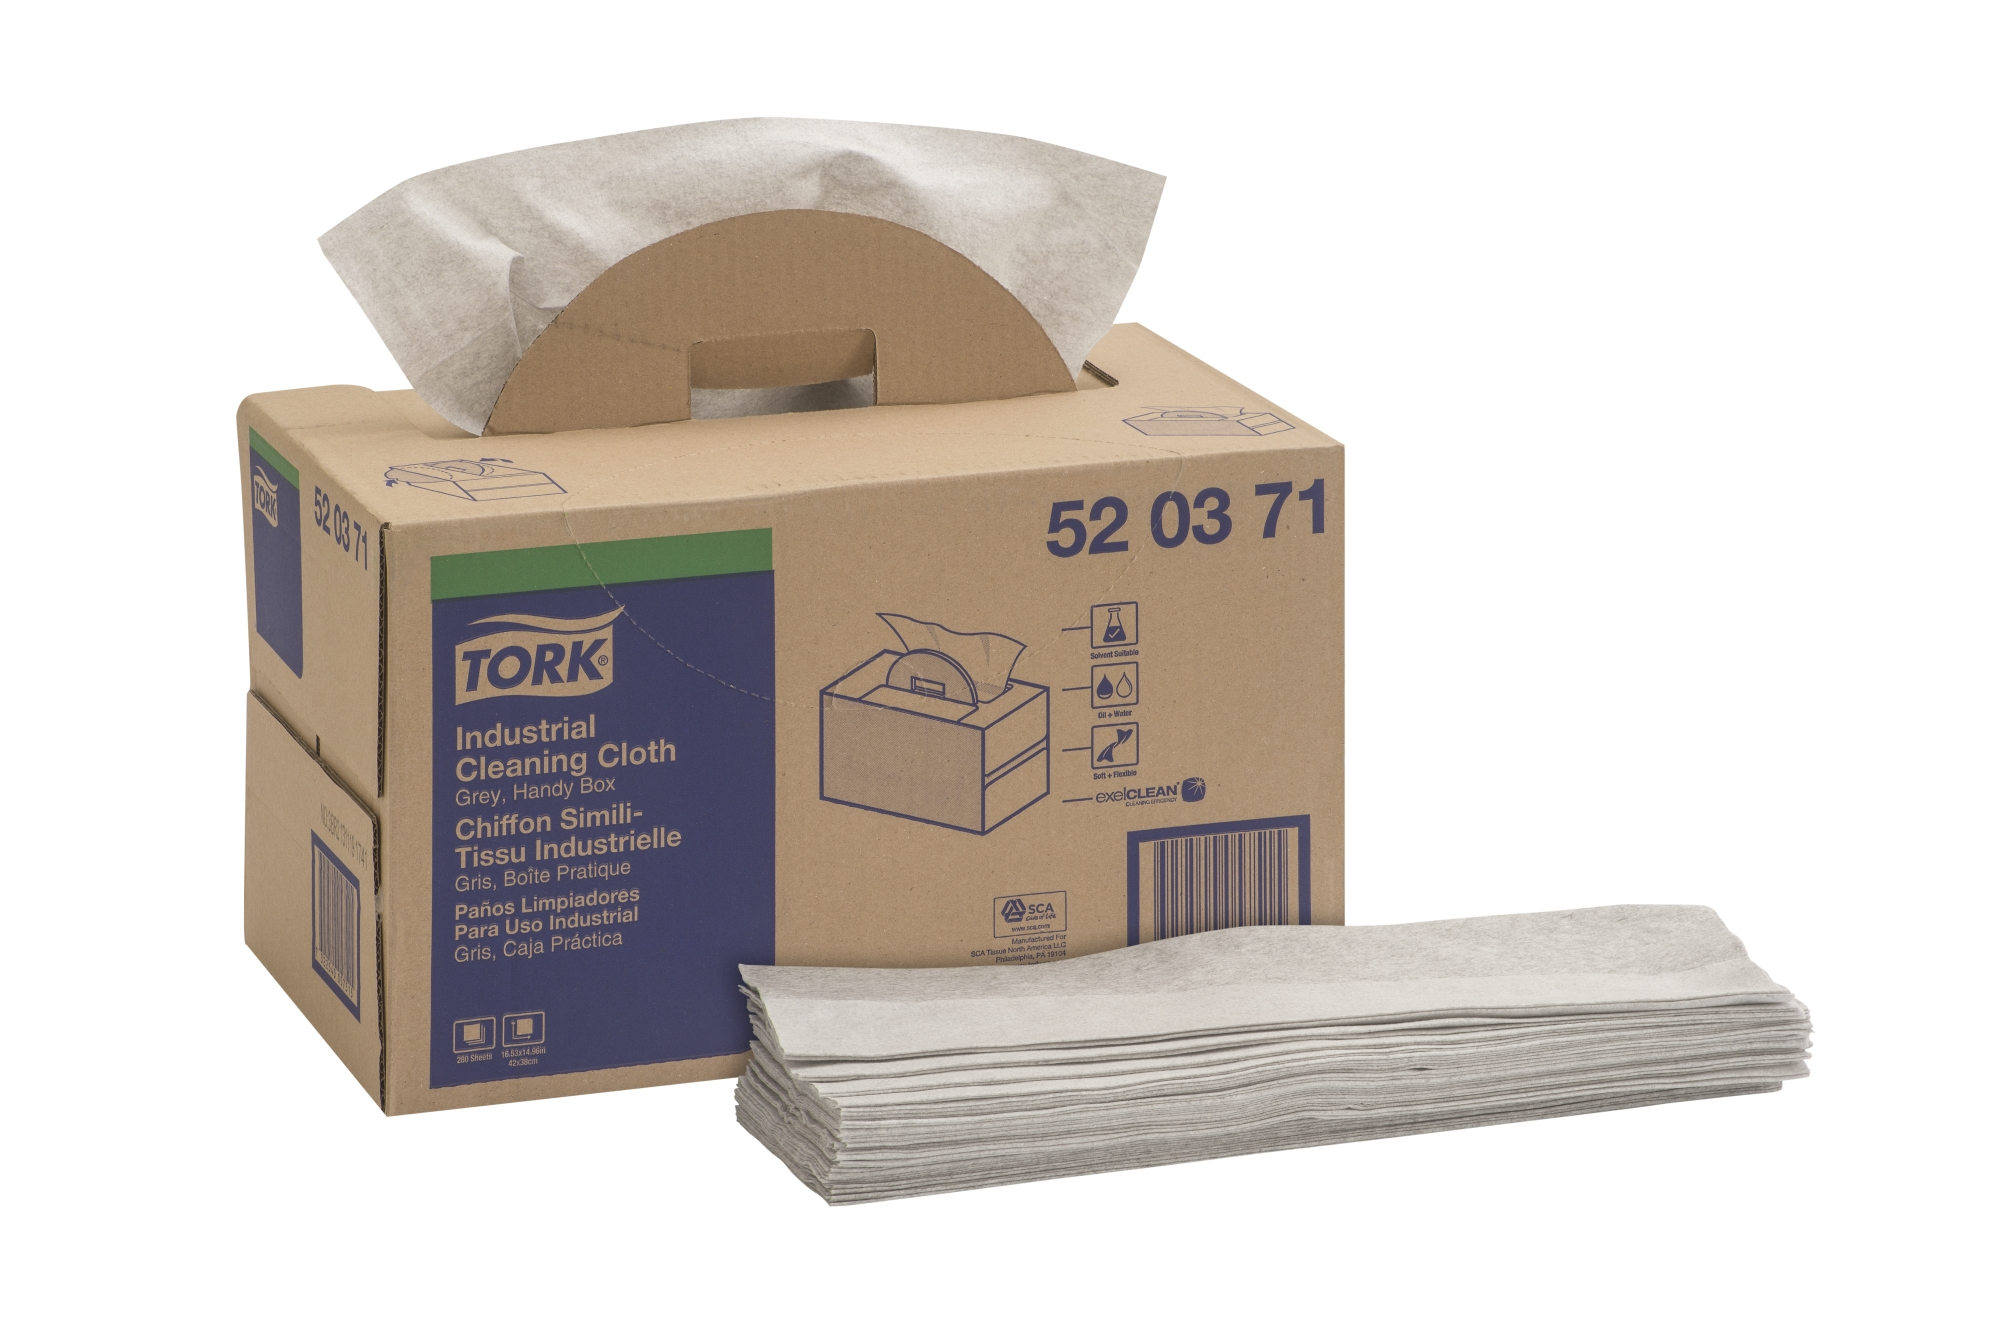 520371 TORK CLOTH HANDY BX 280